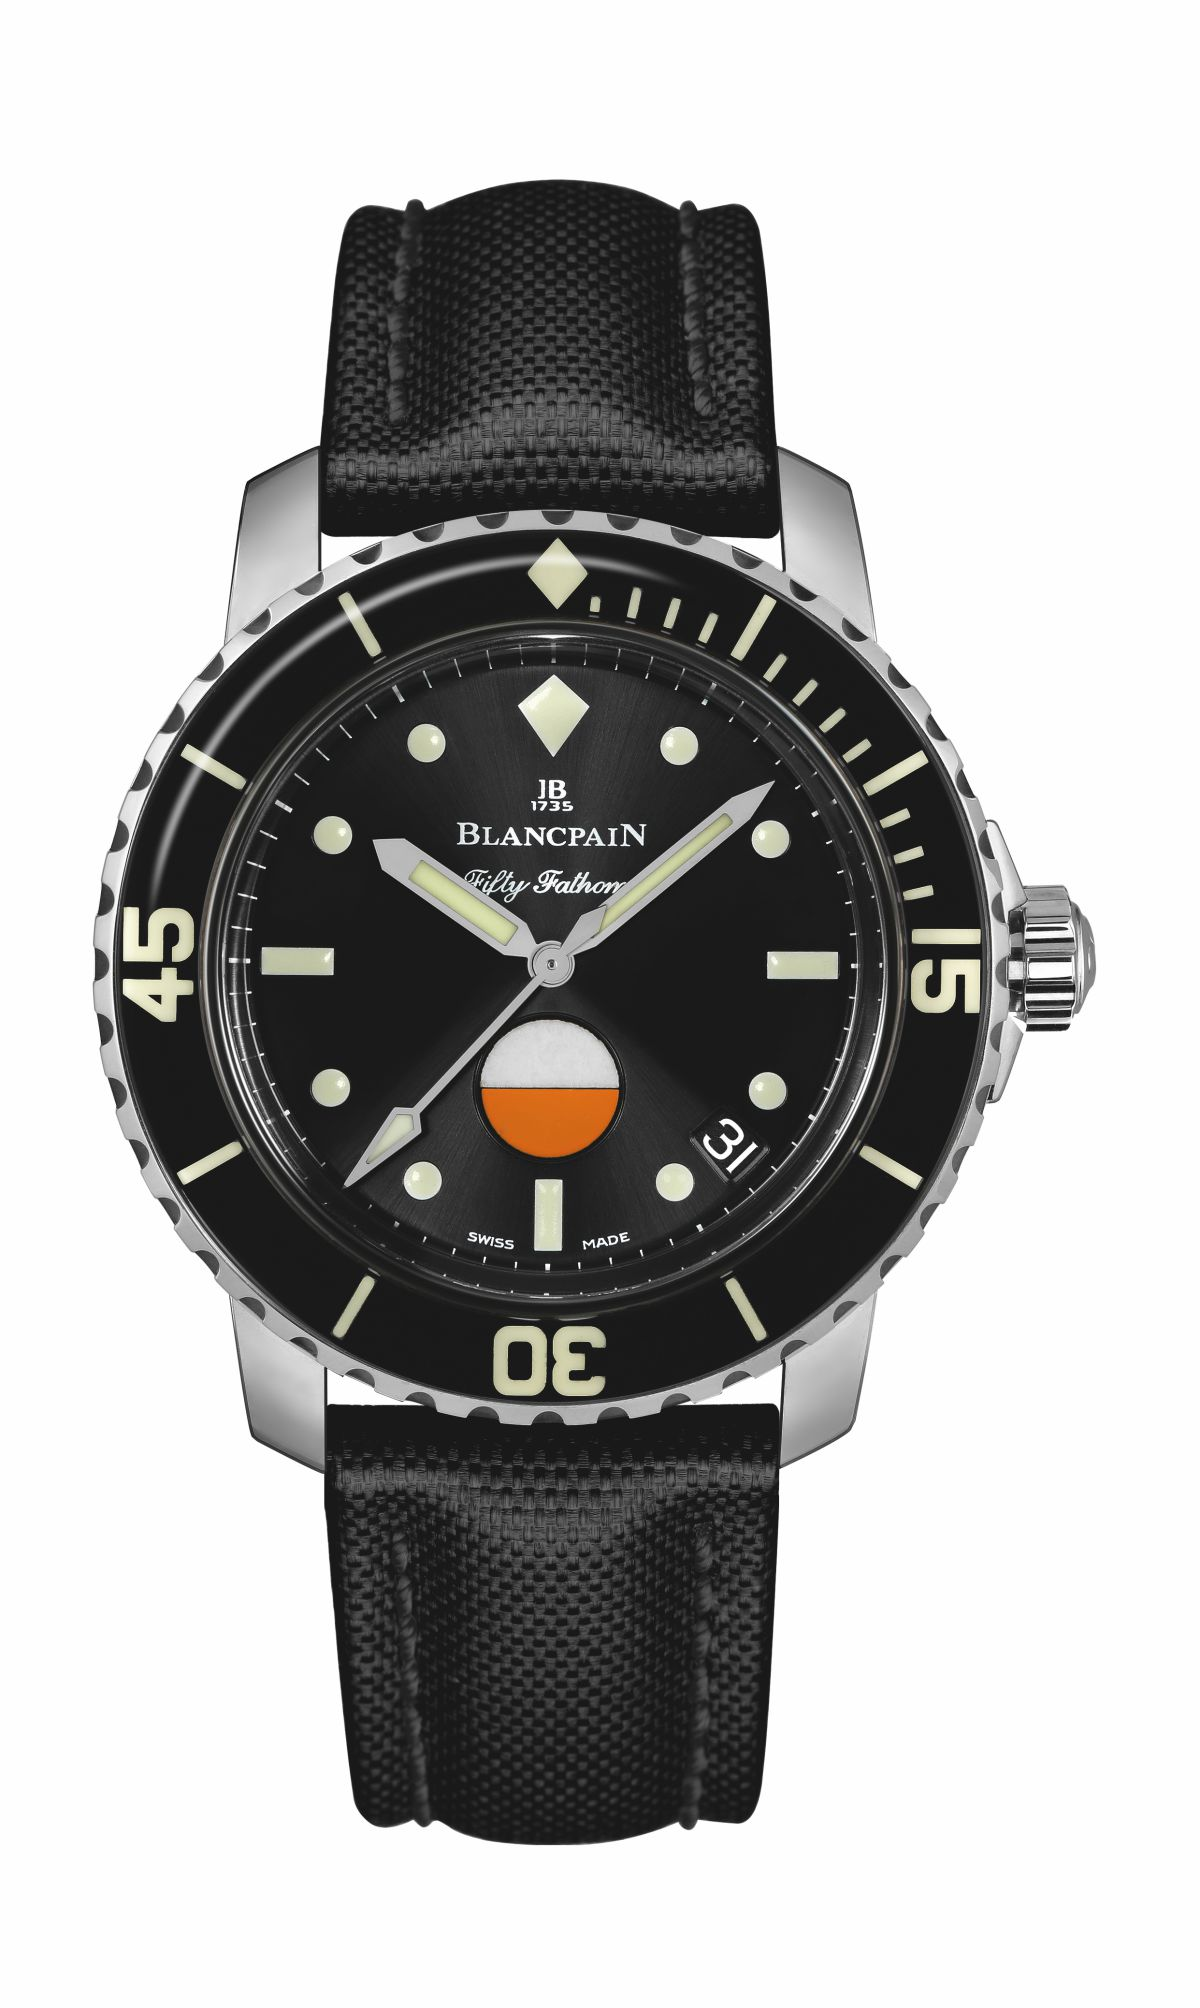 Blancpain-Fifty-Fathoms-Mil-Spec-2.jpg